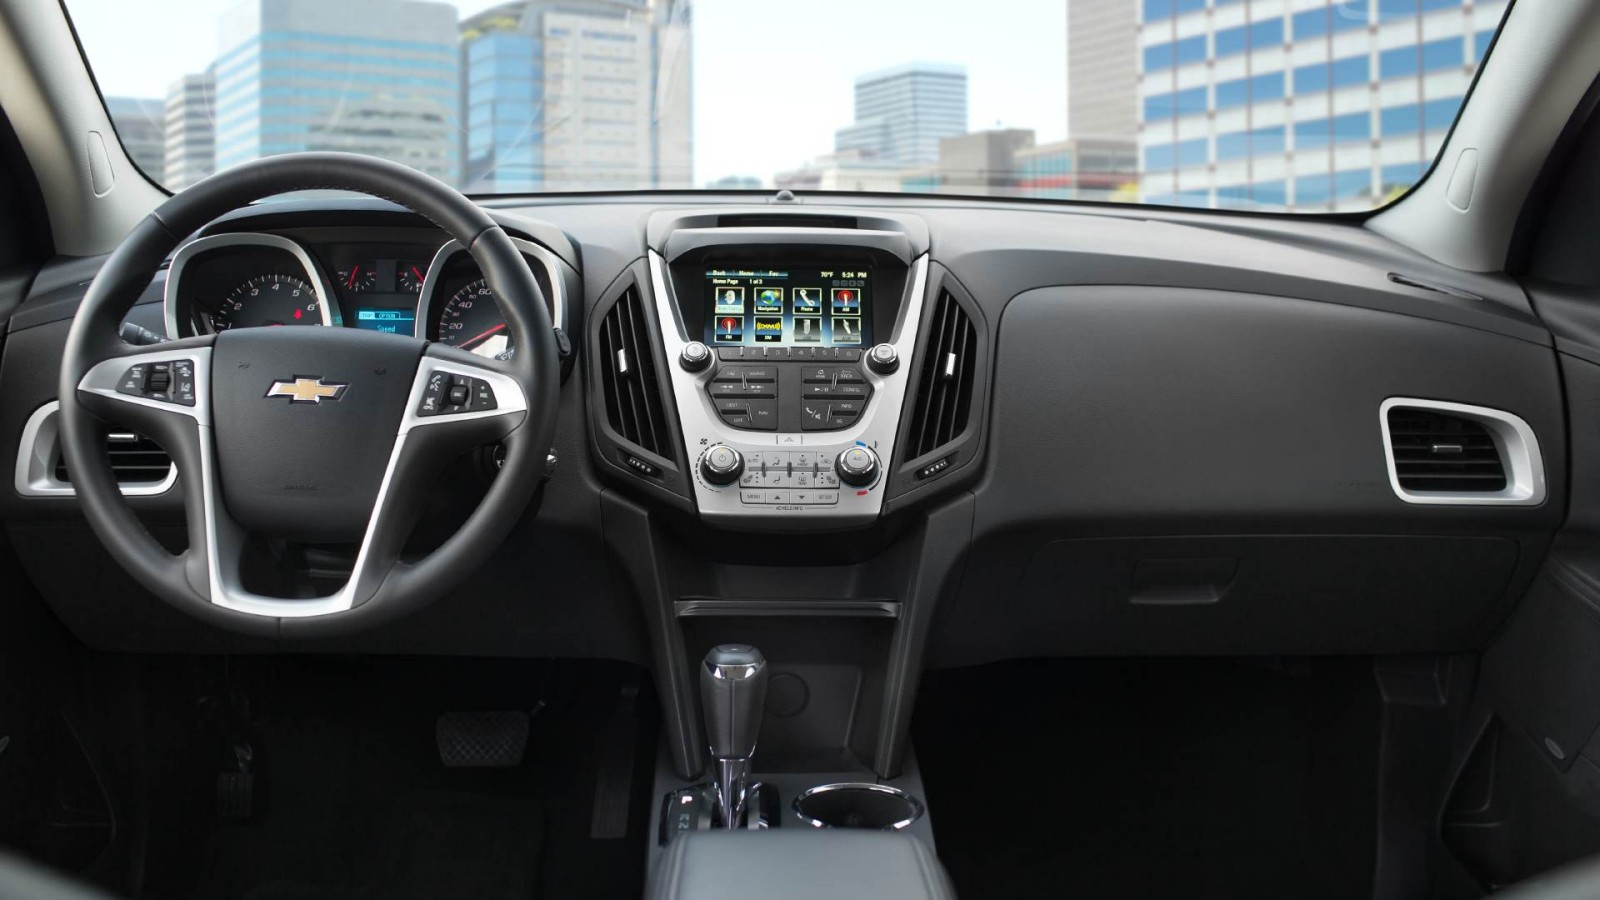 Interior of the 2016 Chevy Equinox